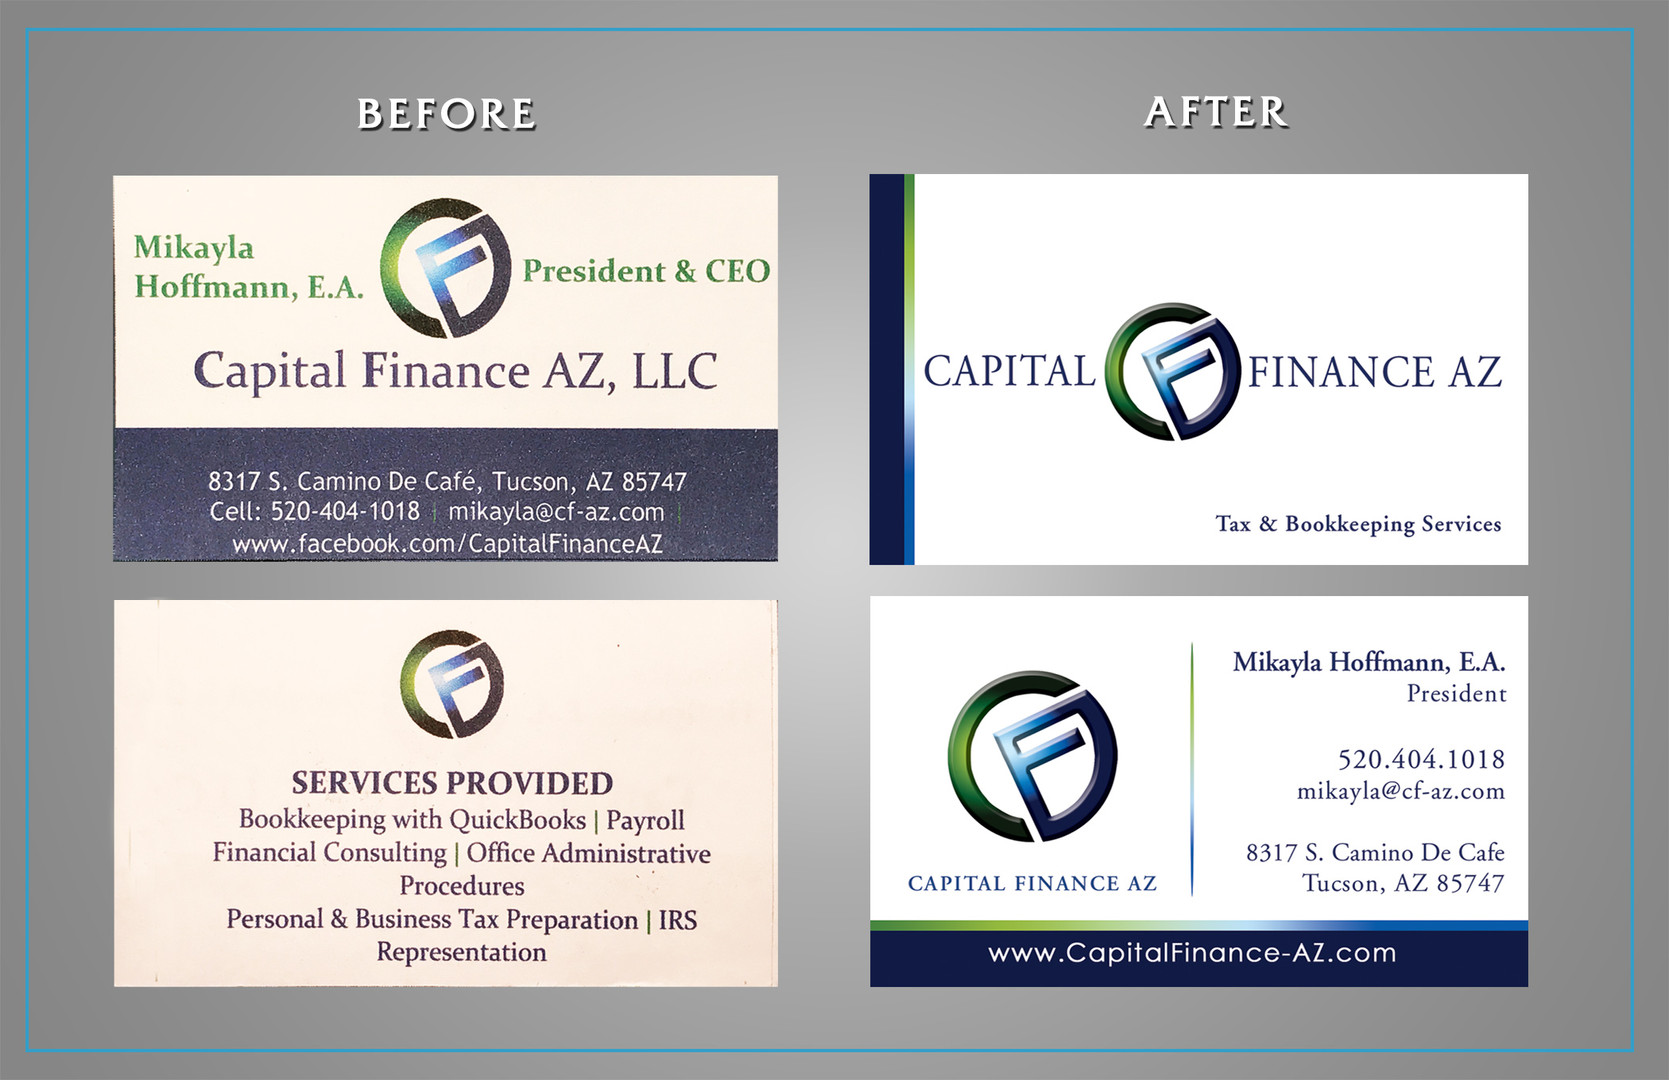 Before After_ BC_CAP FINANCE.jpg